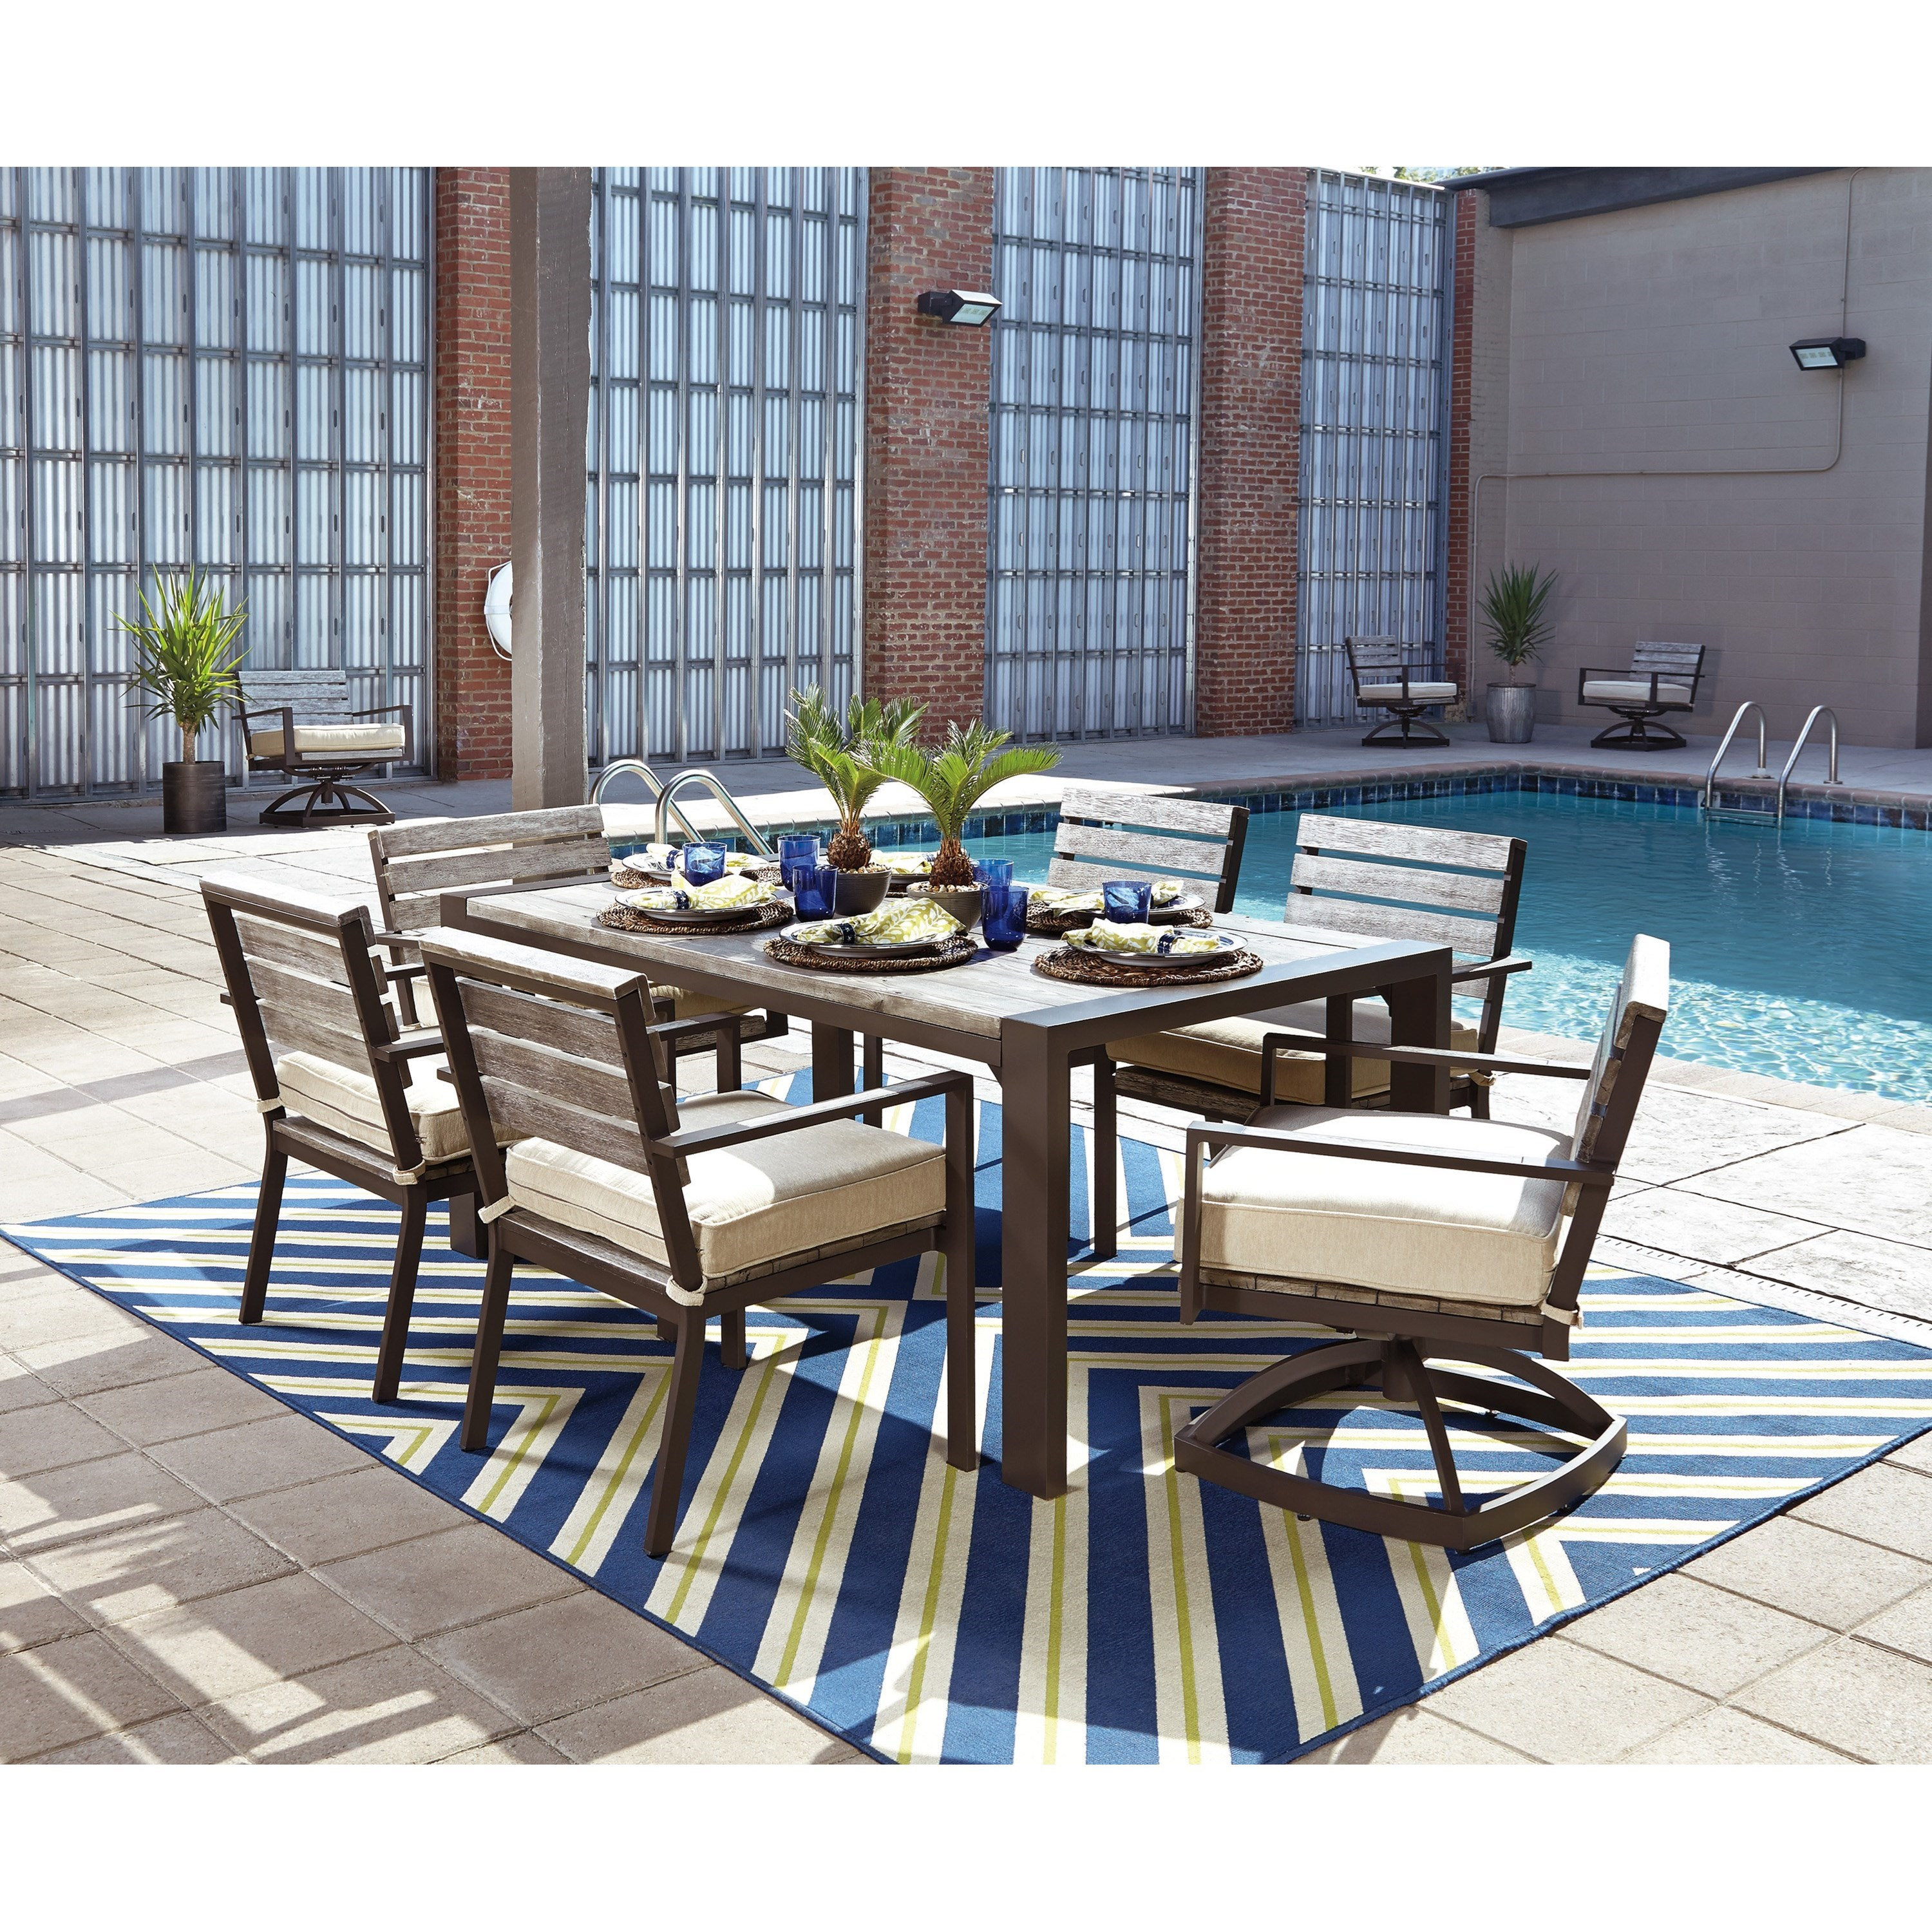 Kitchen sets with swivel chairs - Outdoor Dining Table Set With Swivel Chairs